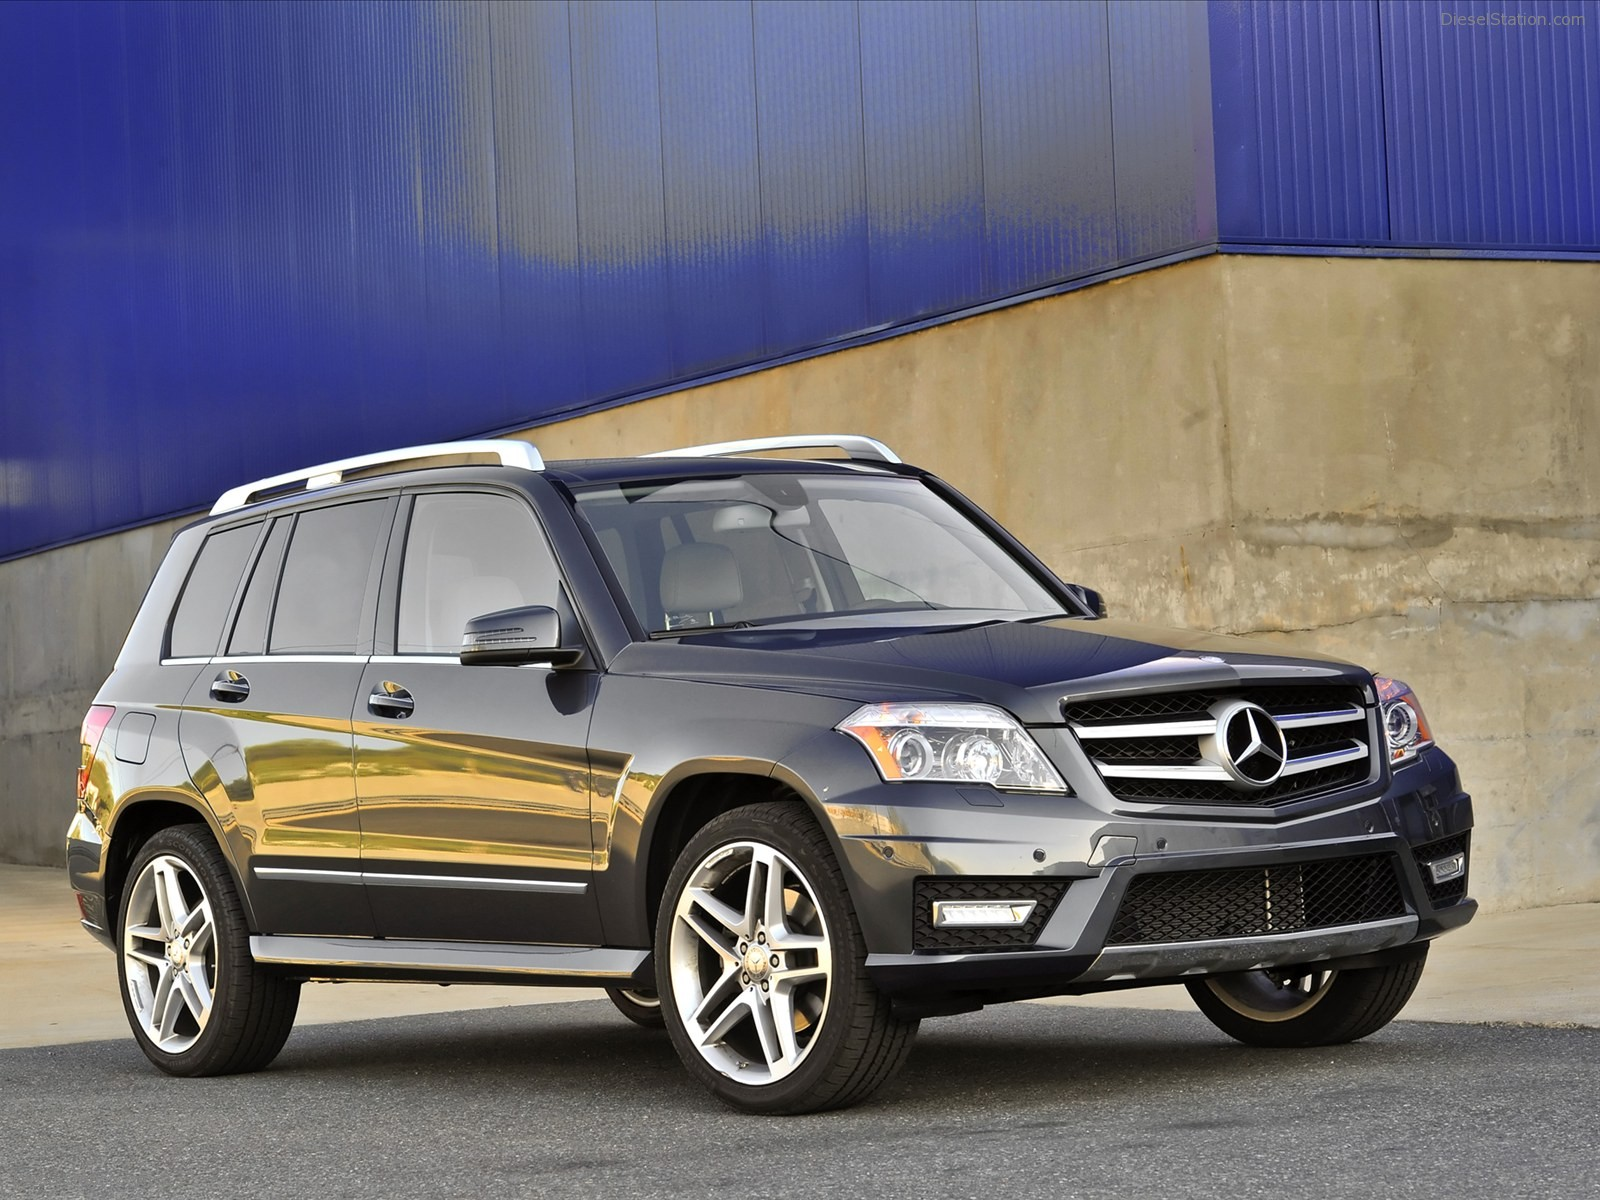 2017 mercedes benz glk350 4matic car photos catalog 2018 for Mercedes benz glk amg